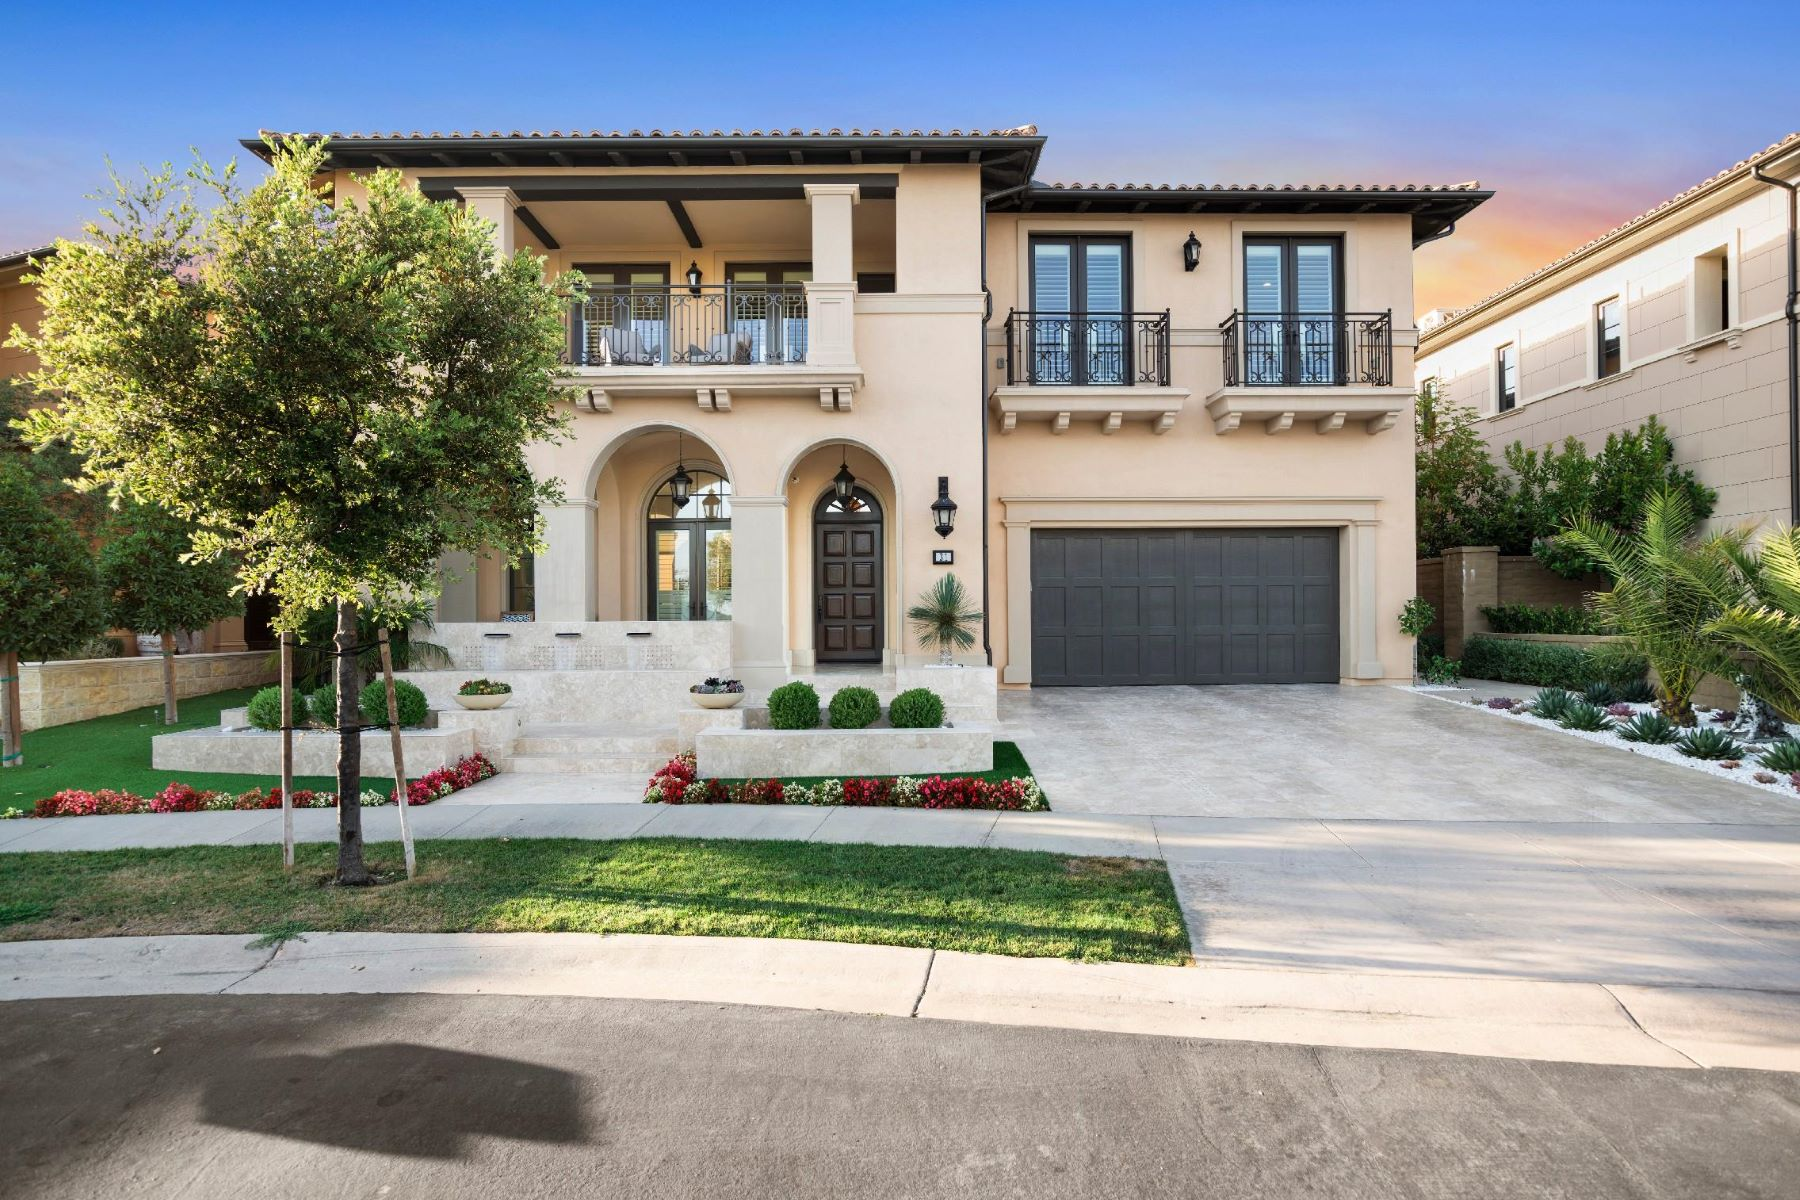 Single Family Homes for Sale at 31 Seawatch Newport Coast, California 92657 United States